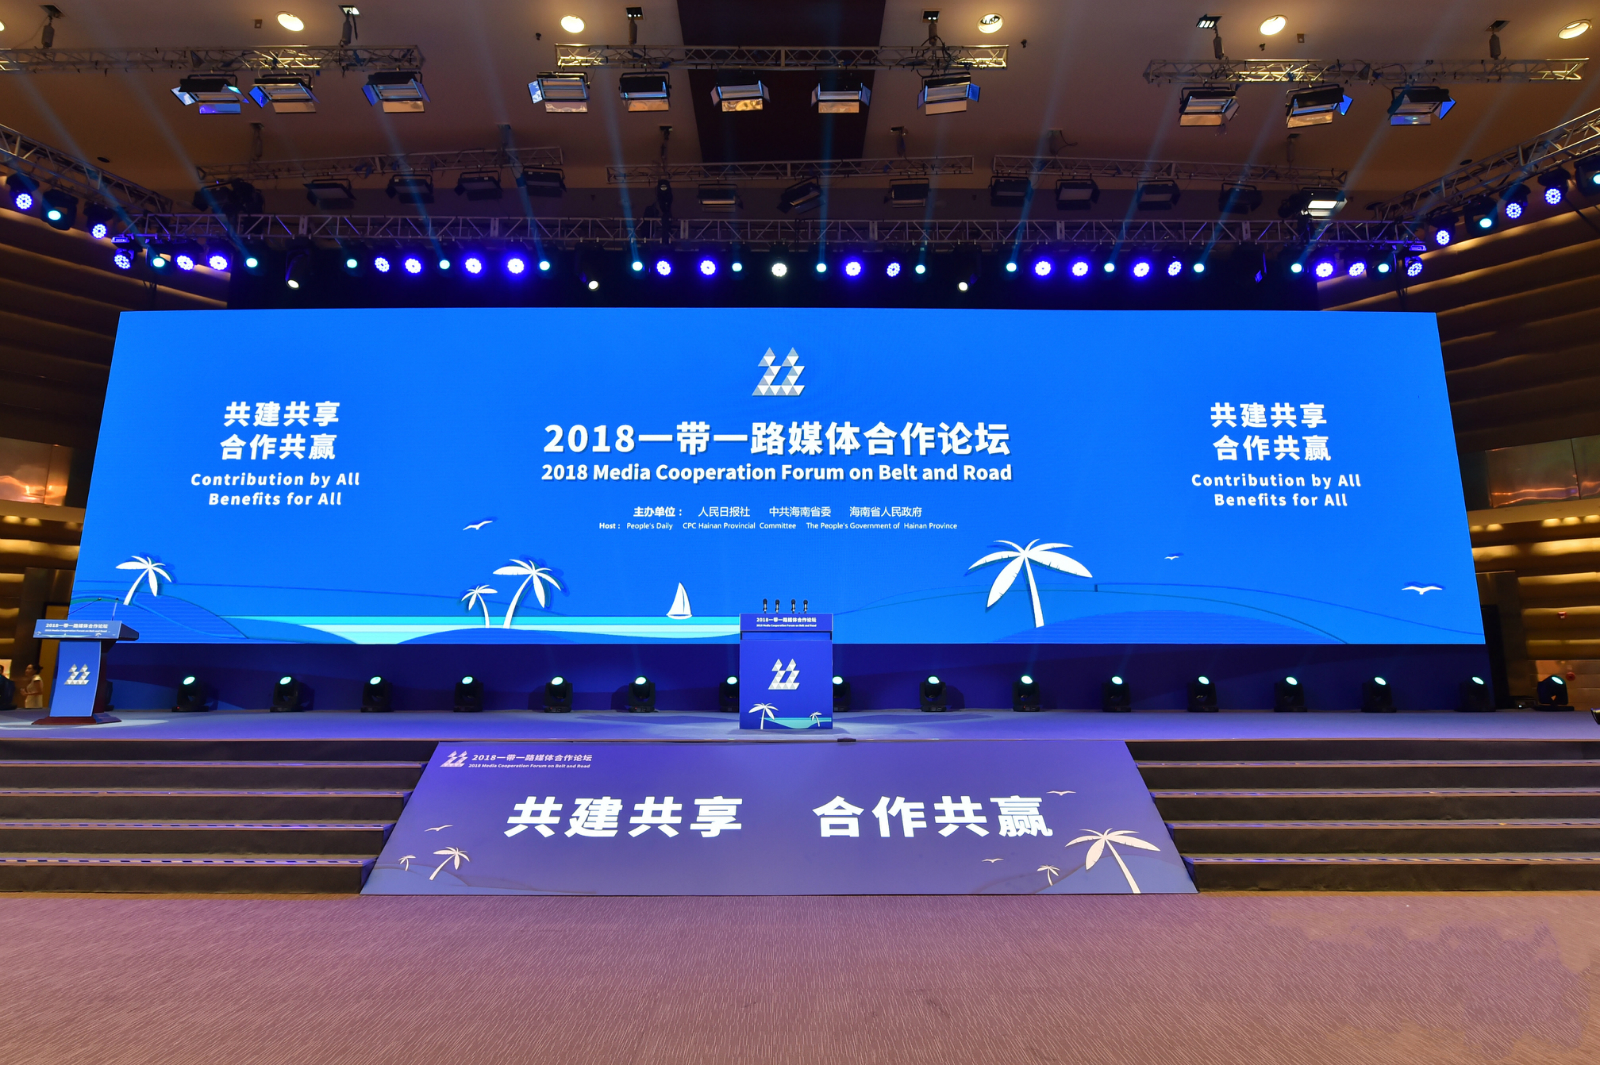 Media Cooperation Forum on Belt and Road kicks off in Hainan